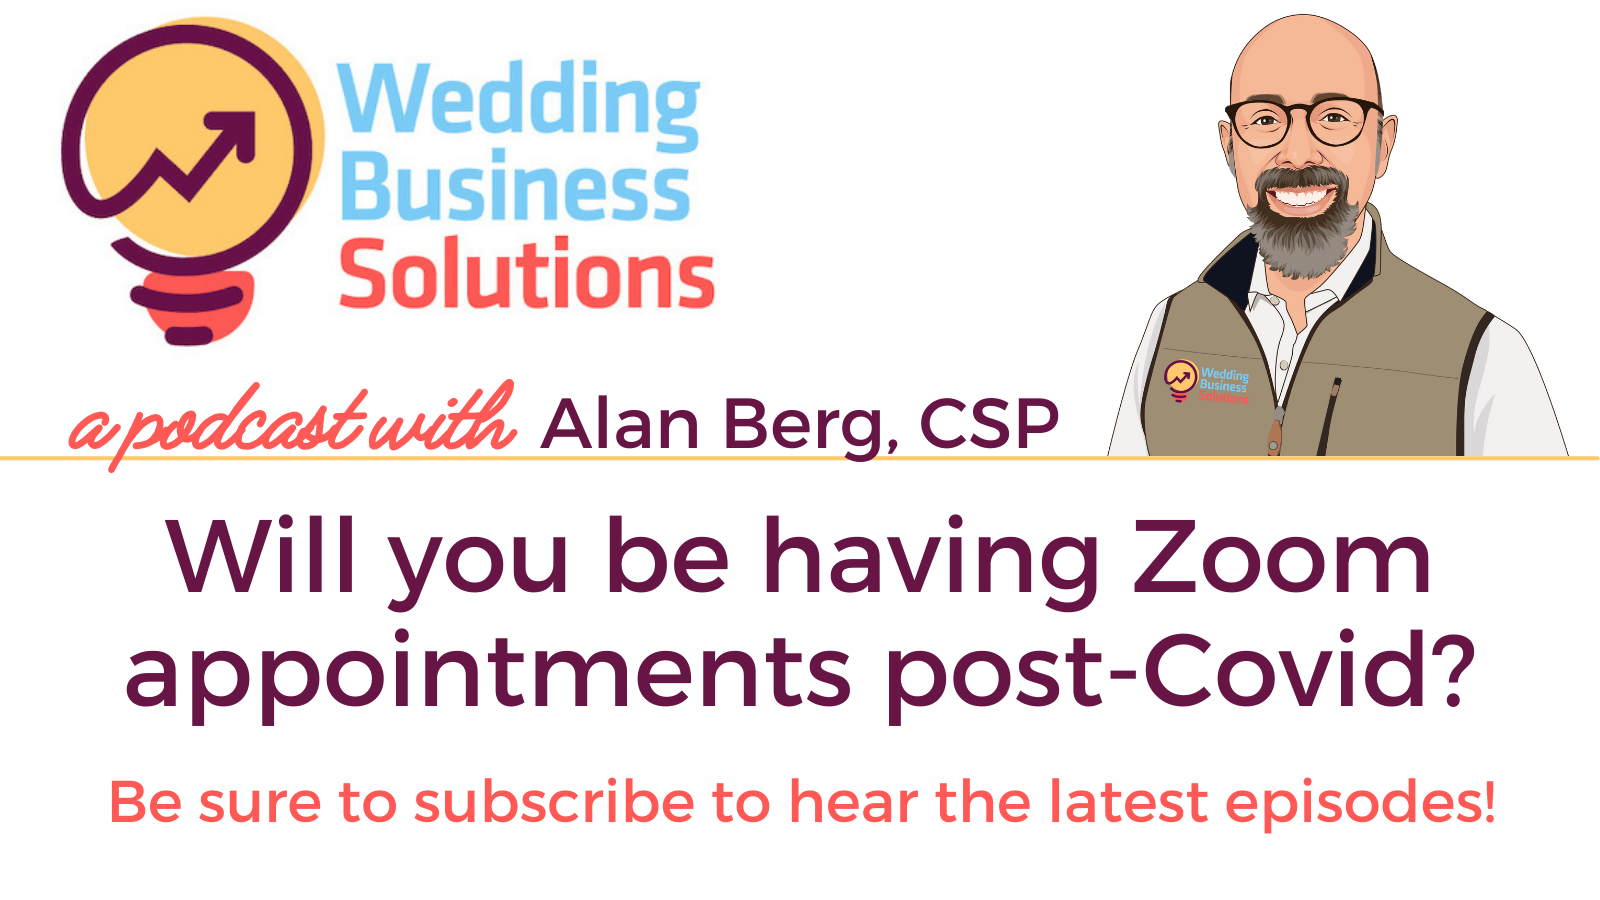 Wedding Business Solutions Podcast - Will you be having Zoom appointments post-Covid? with Alan Berg CSP